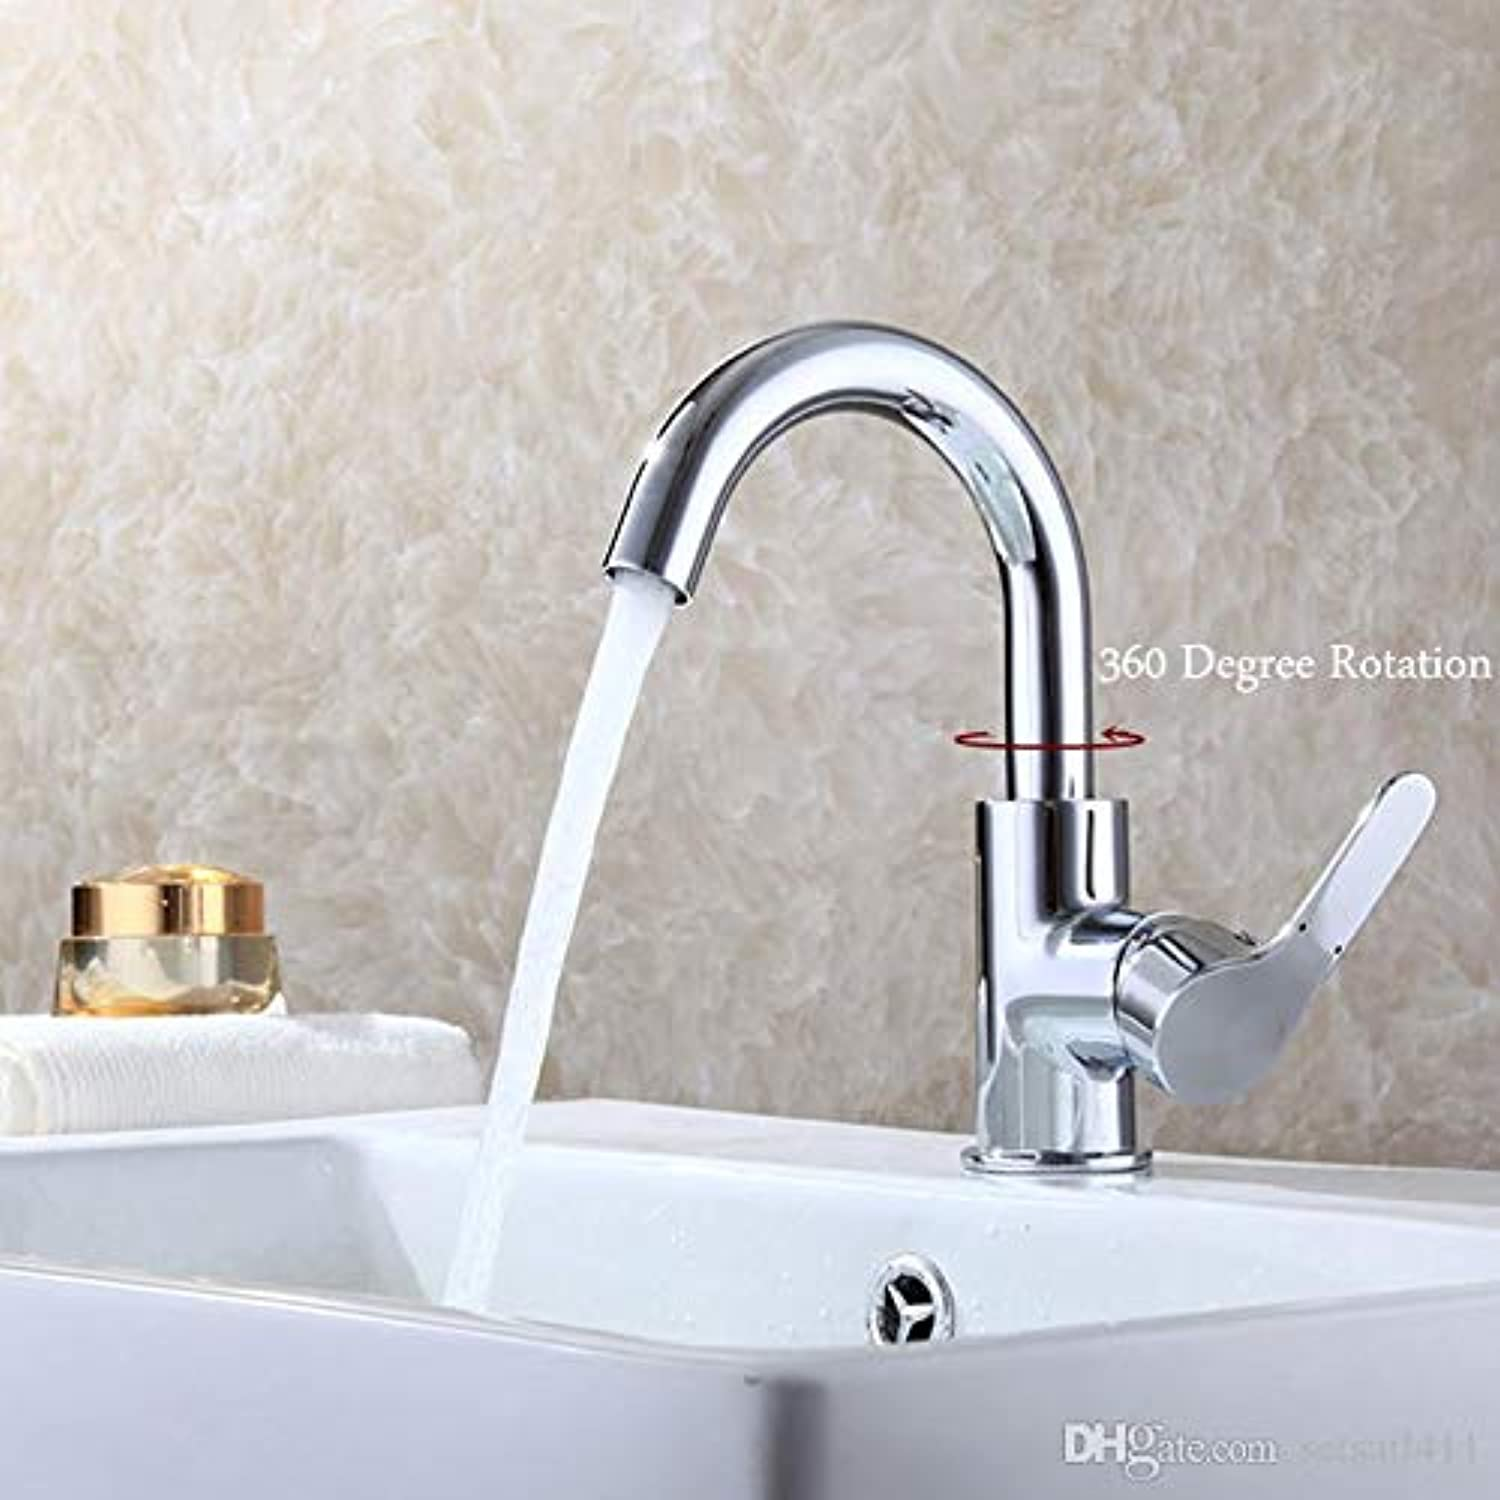 Decorry Faucets Mixer 360 Degree redation Easy Wash for Basin Faucet Kitchen Brass Chrome Faucet Hot Cold Spool